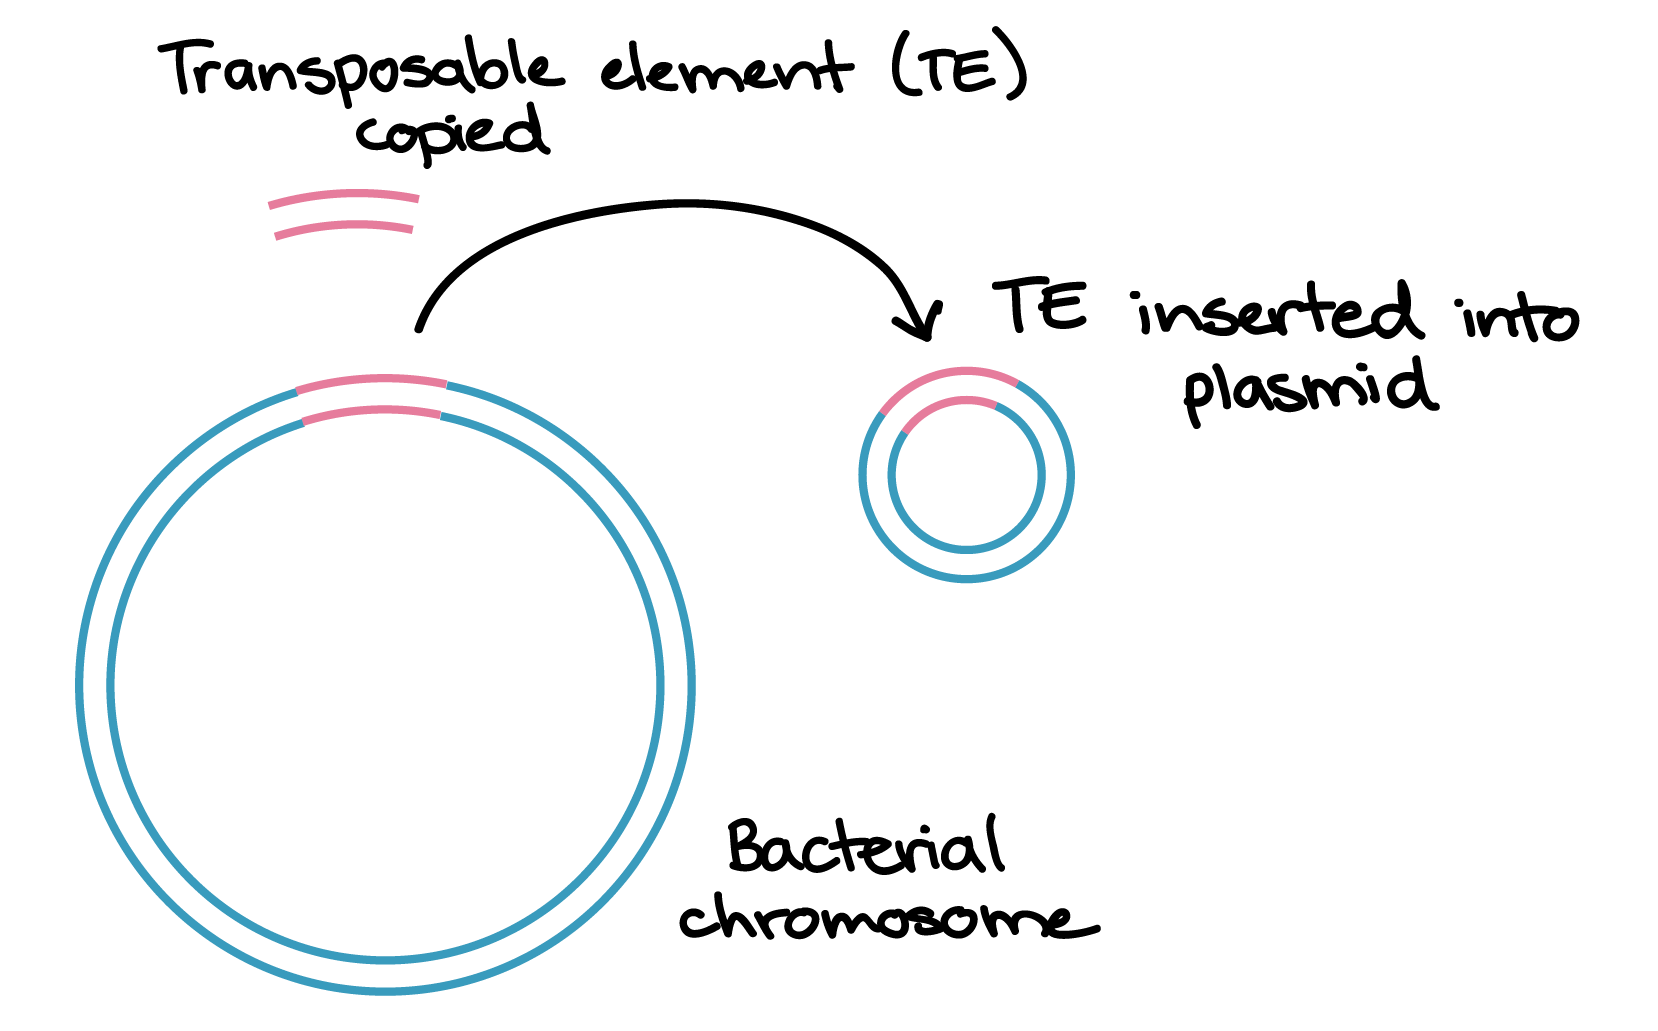 Briefly explain how sexual reproduction generates new allele combinations in offsprings